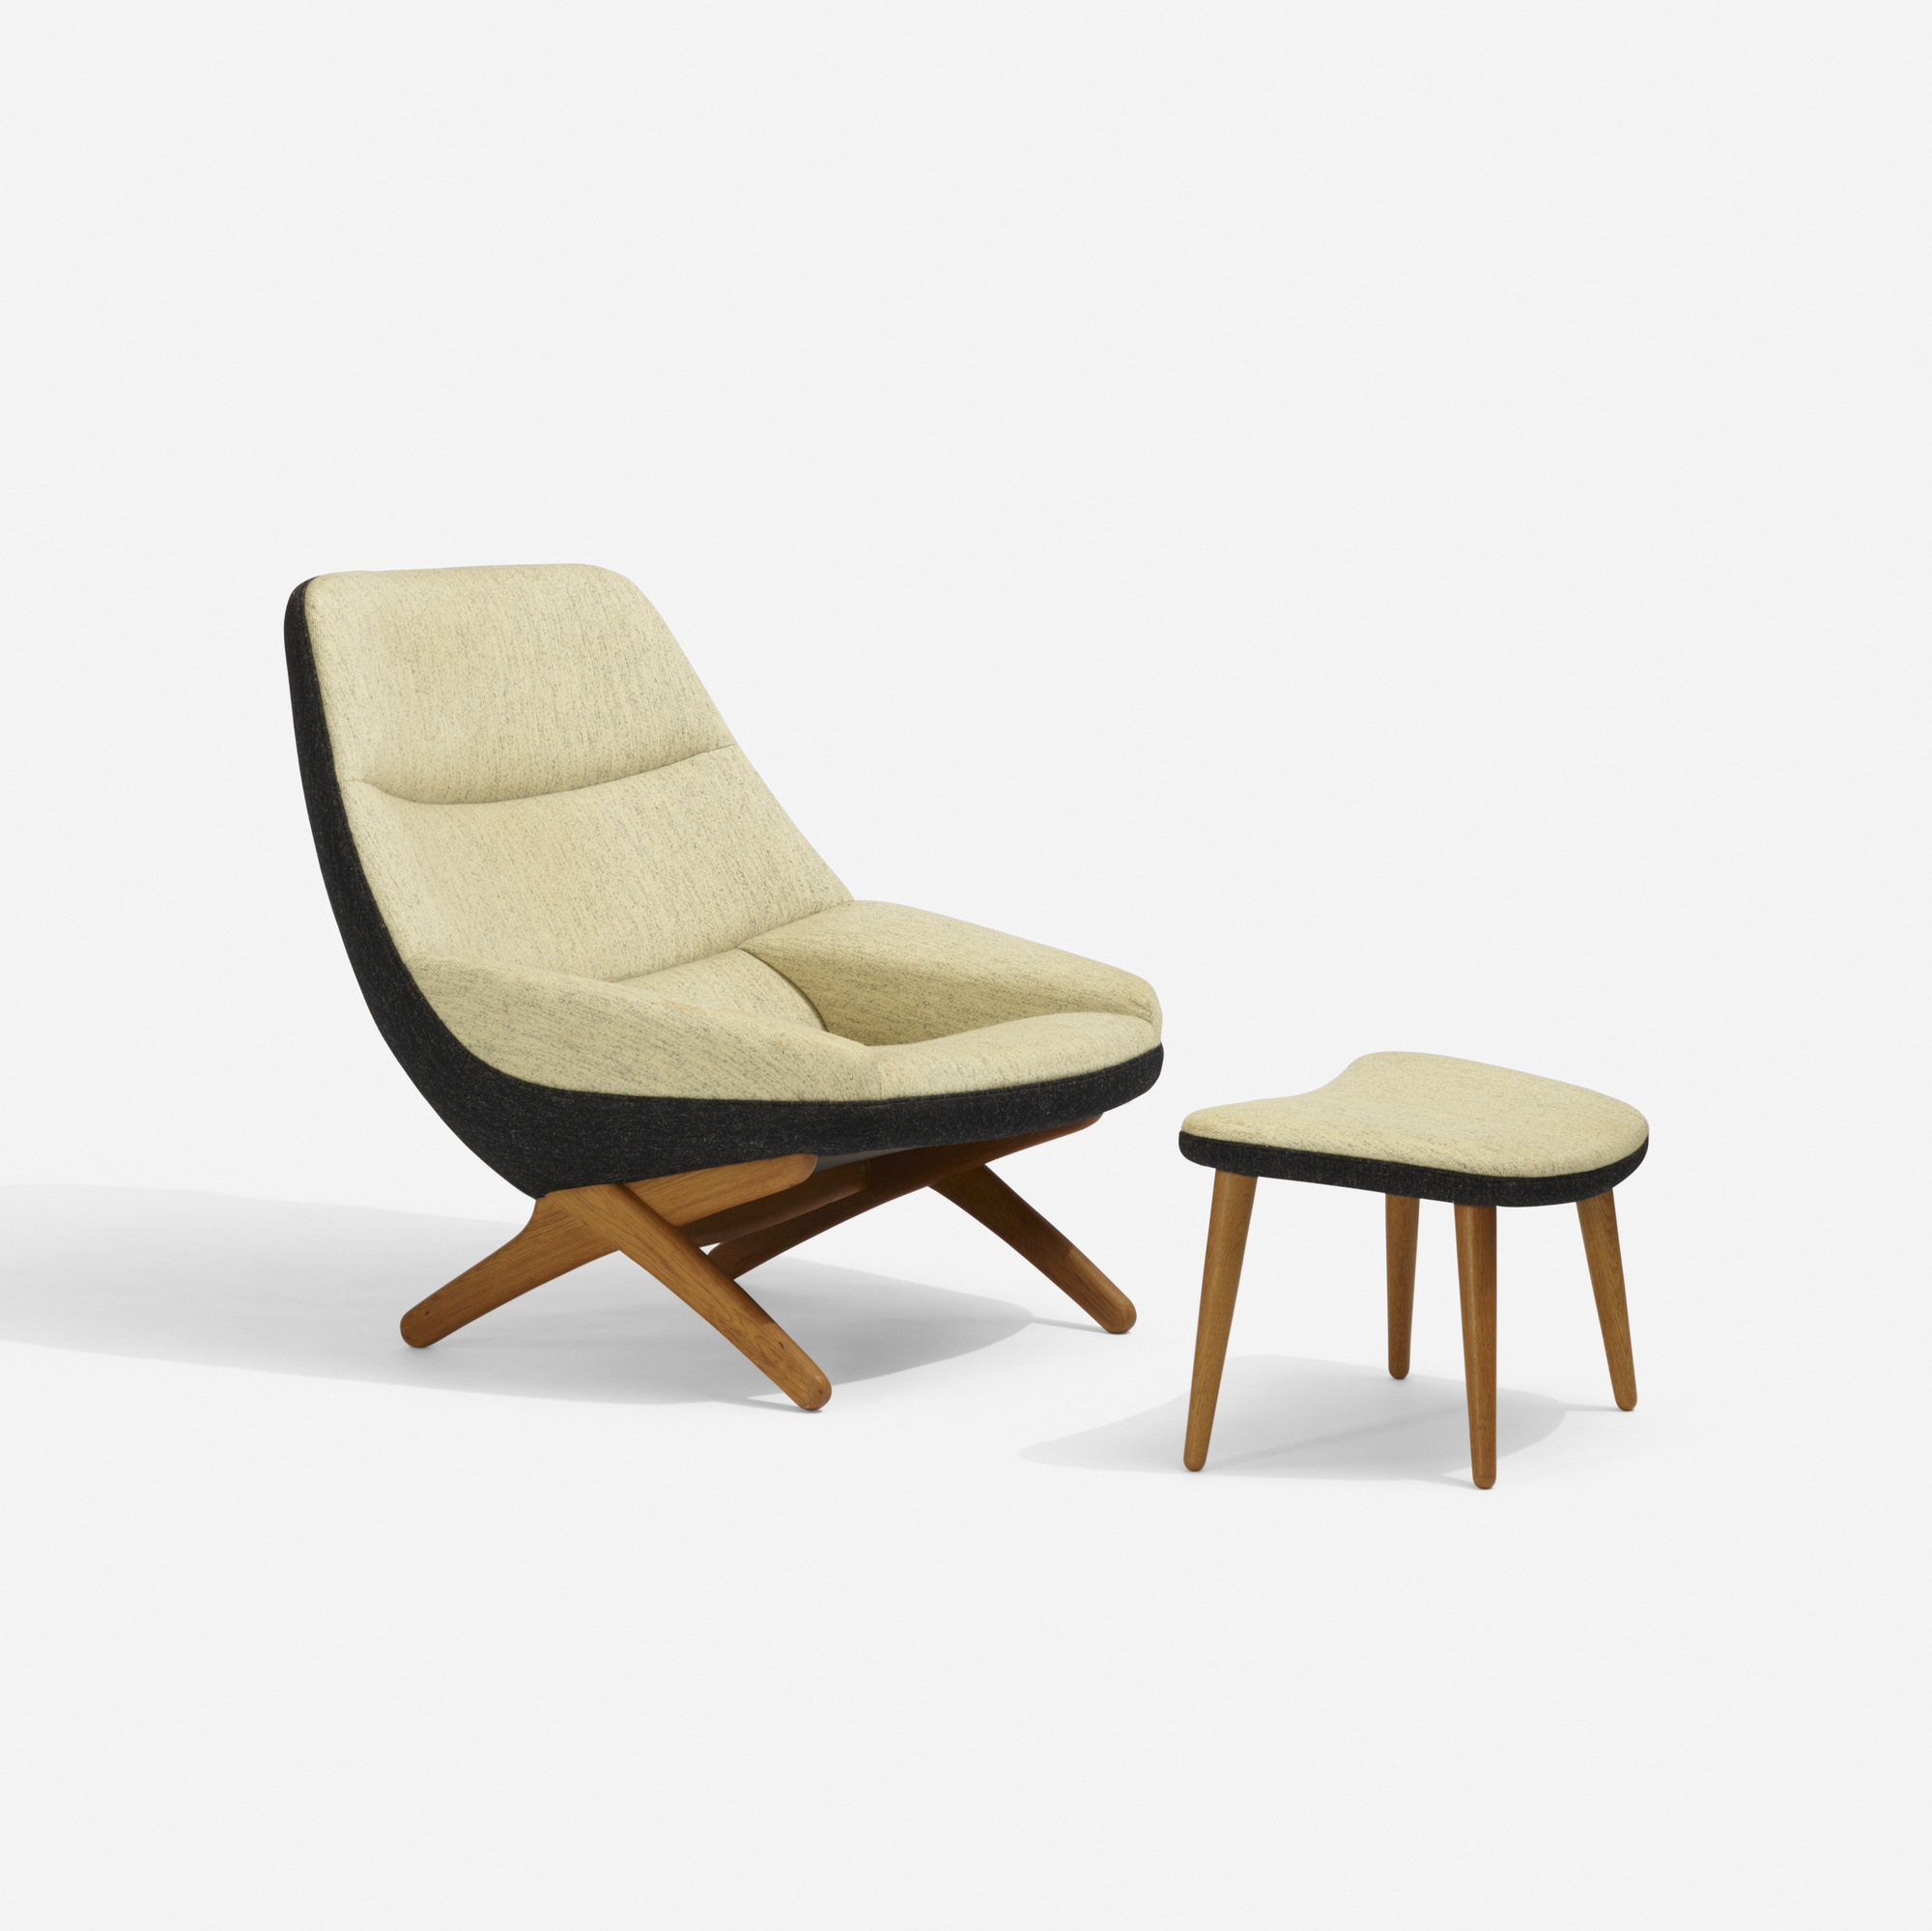 279: Illum Wikkelsø / lounge chair, model 91 and ottoman (1 of 3)